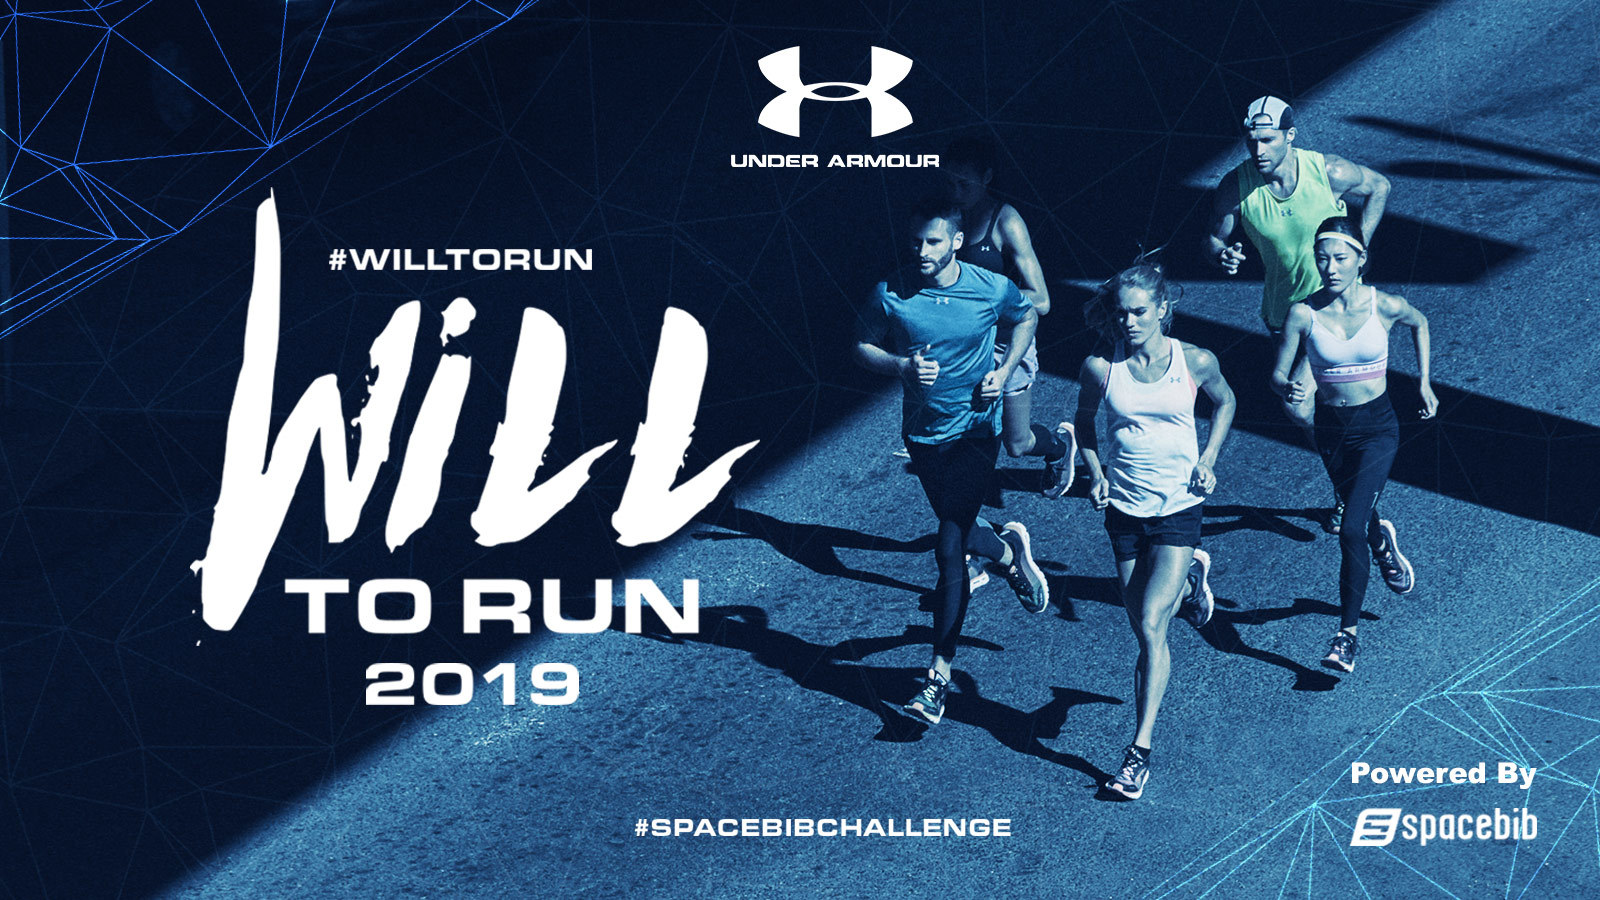 079d5e734c8 Under Armour Will to Run Online Challenge 2019 - Spacebib